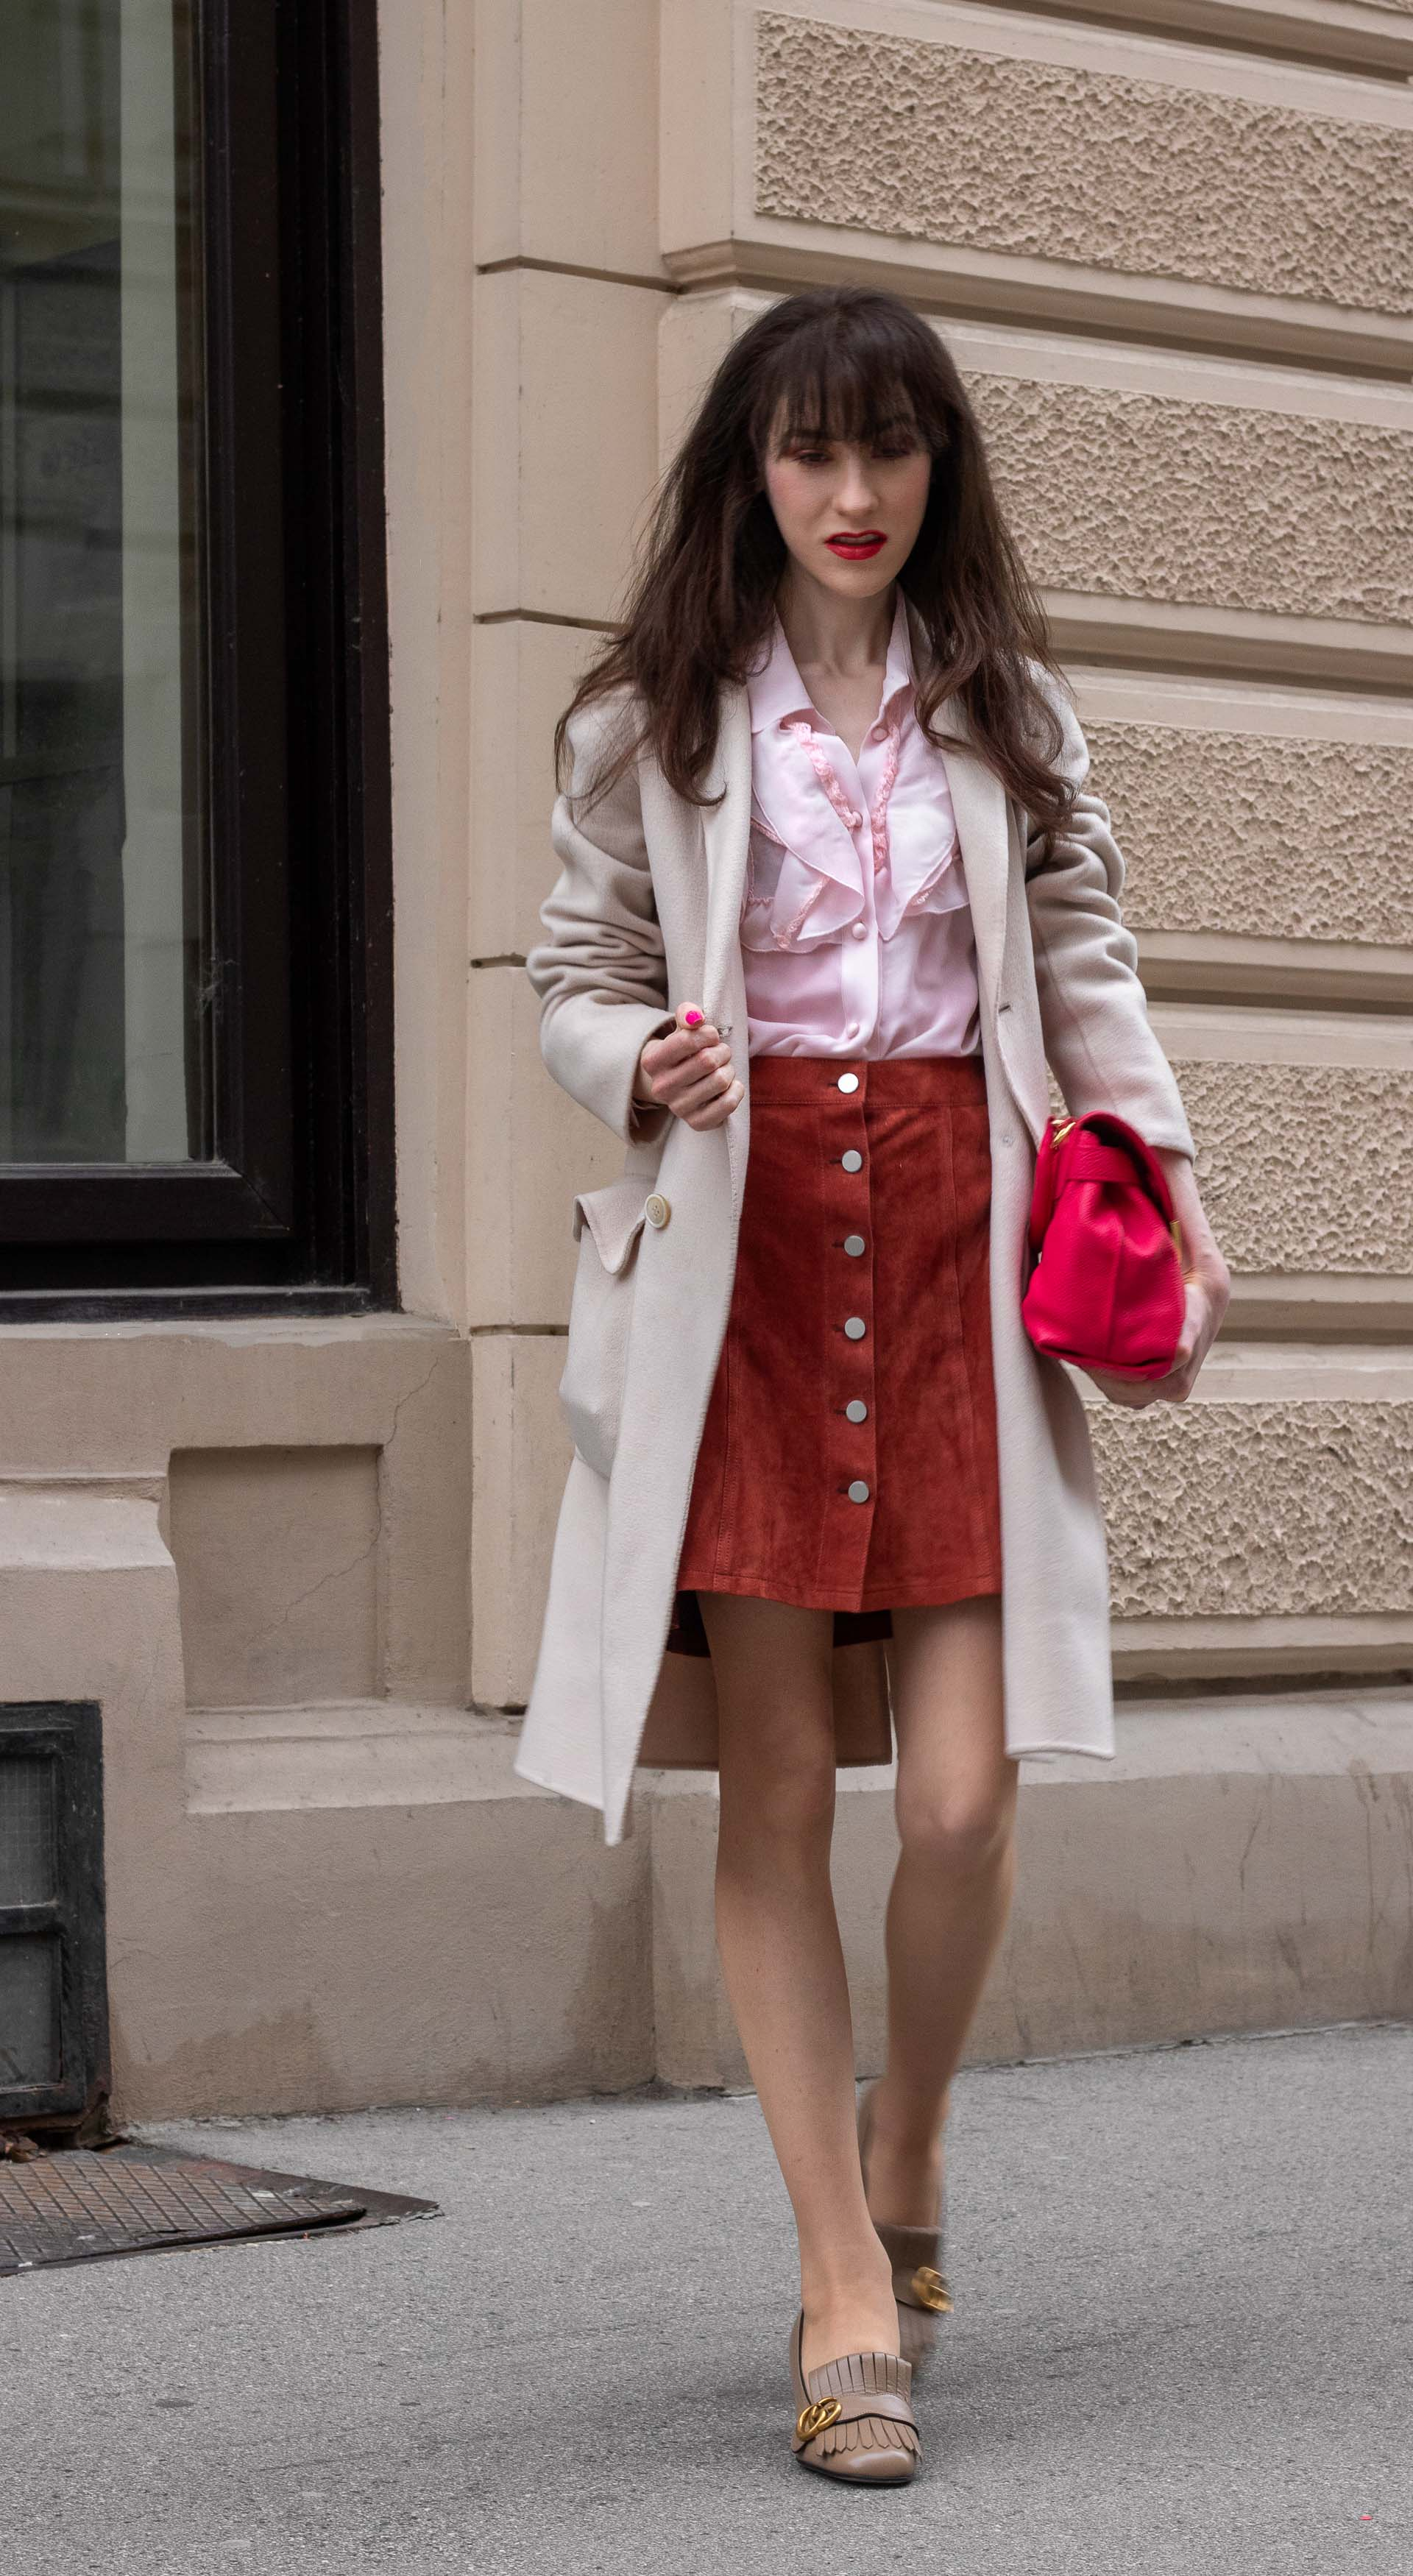 Fashion blogger Veronika Lipar of Brunette from Wall Street wearing easy transitional outfit Weekend Max Mara double breasted coat Red Valentino pink blouse brown suede front button short skirt pink pouch bag Gucci heeled loafers Sunday to Monday